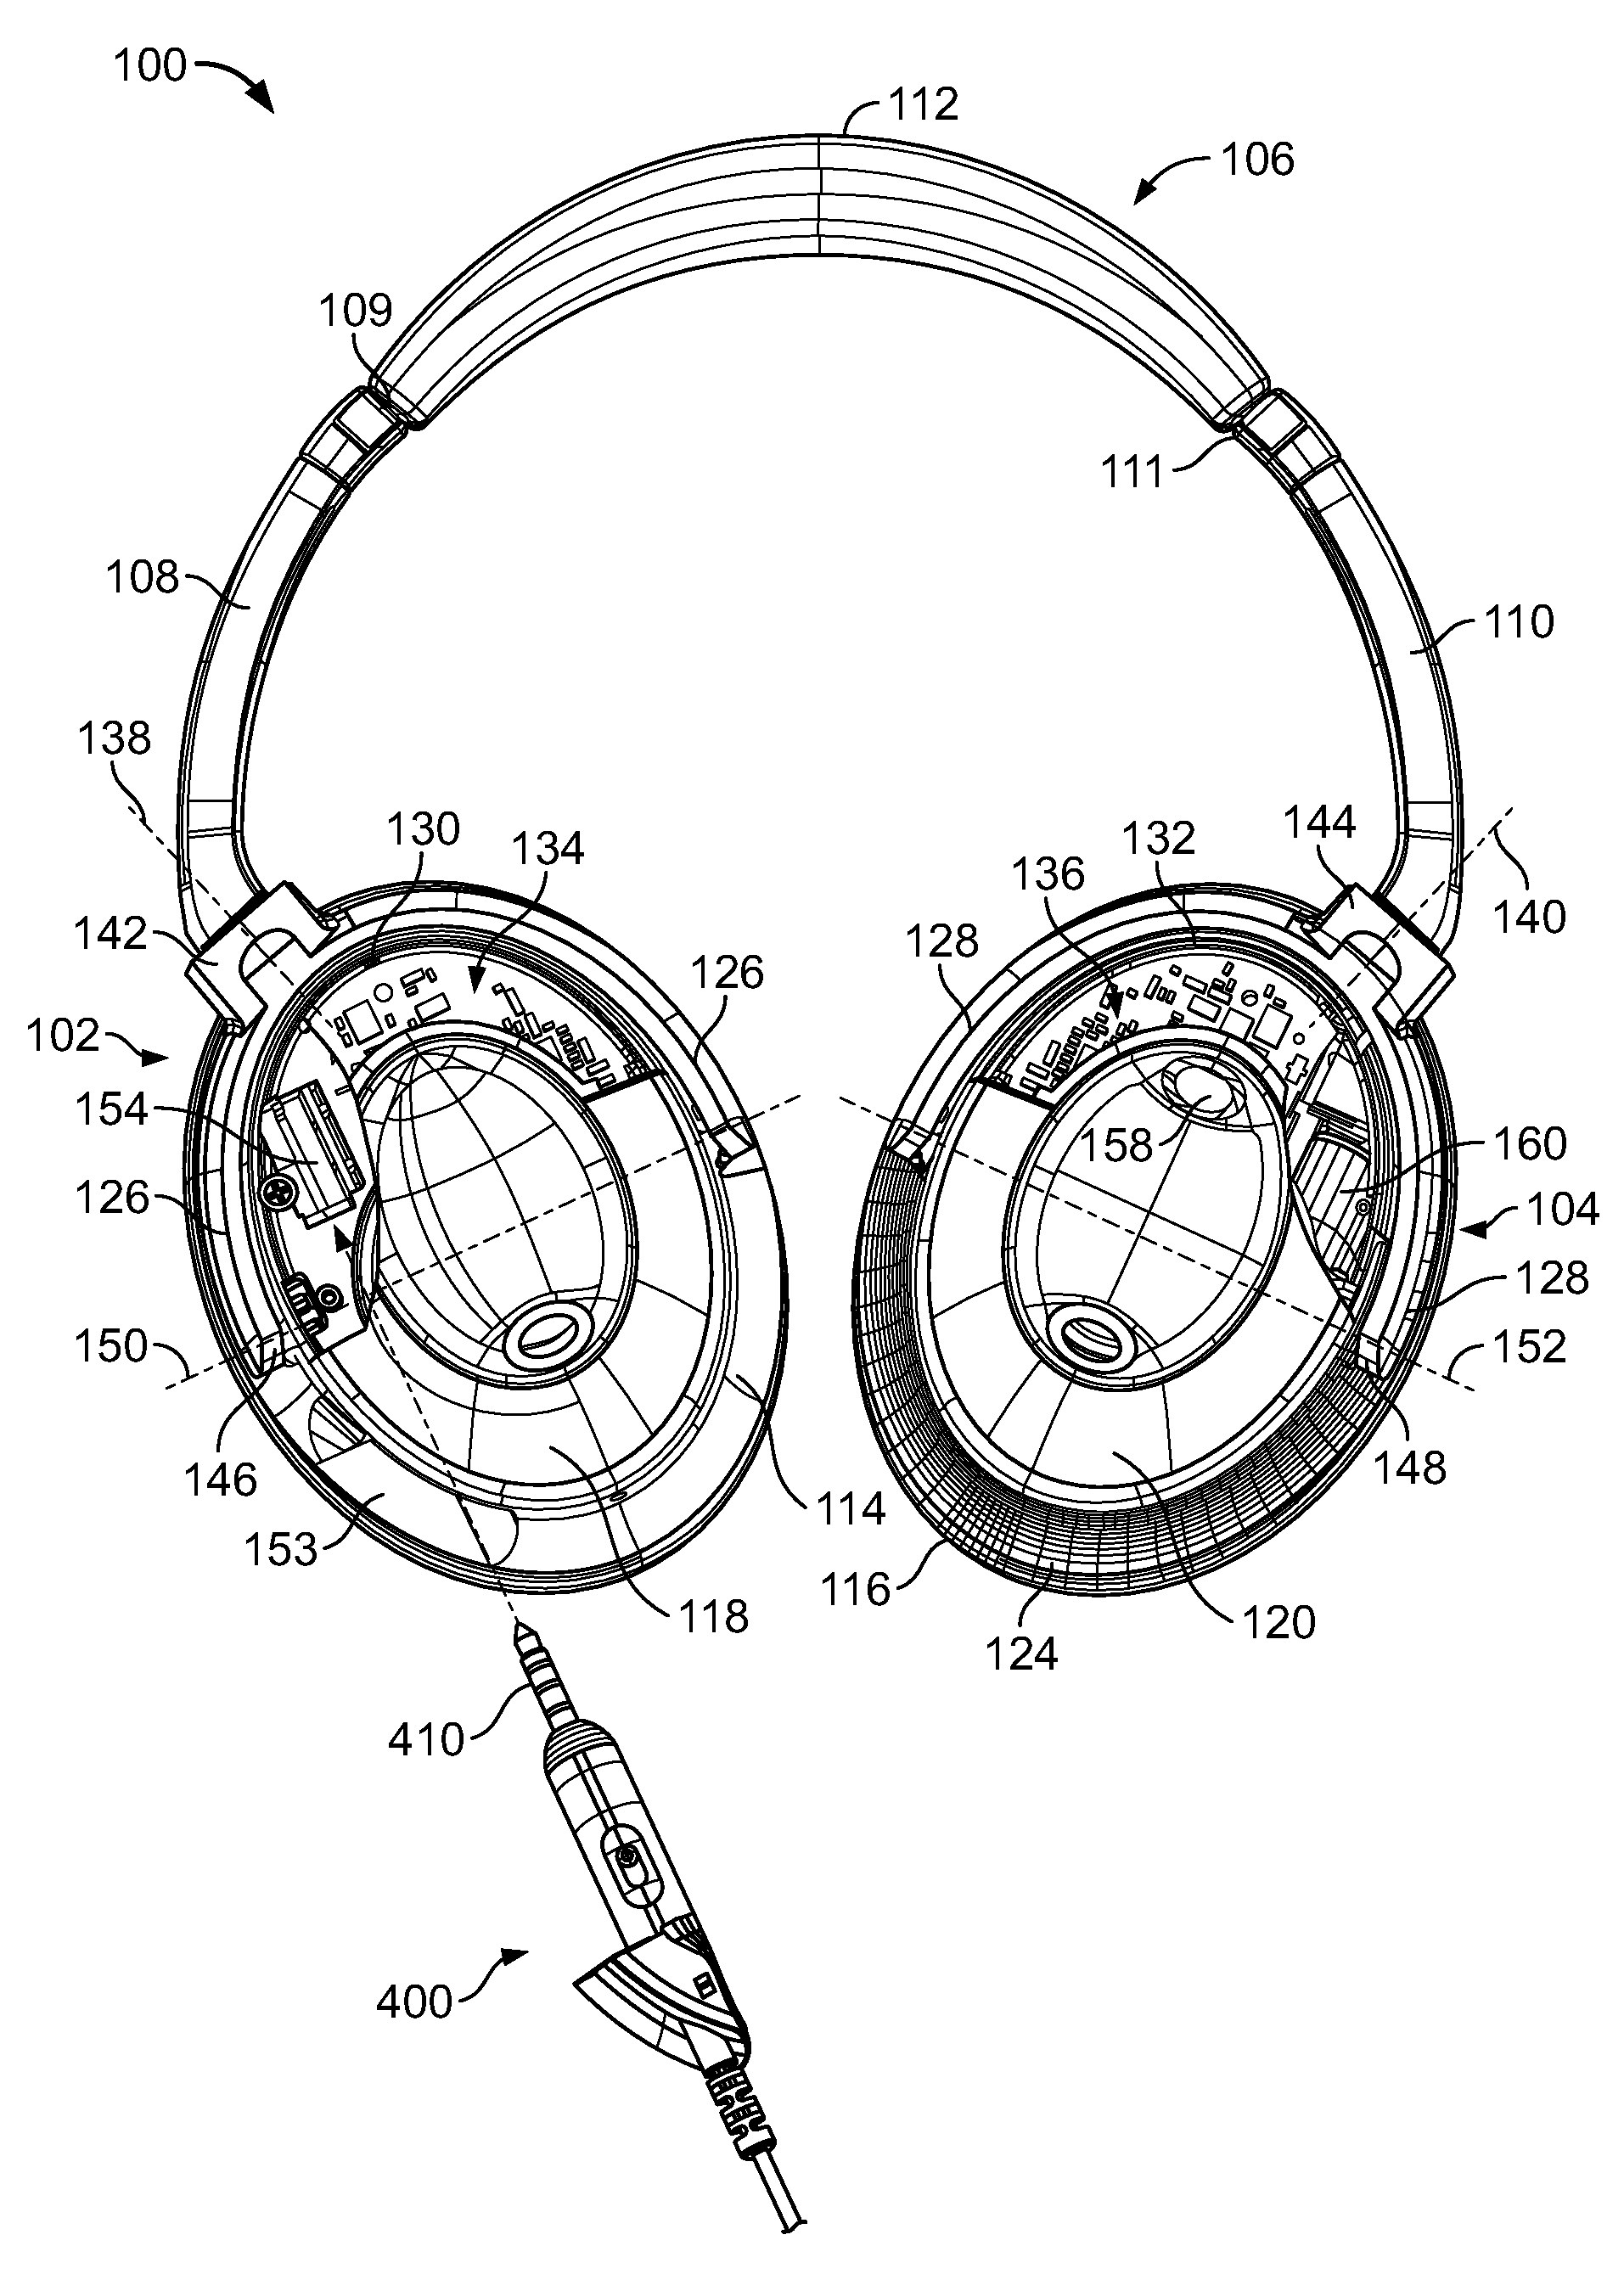 Bose Headphone Wiring Diagram 29 Images Jack Us08031878 20111004 D00000 Patent Us8031878 Electronic Interfacing With A Head Mounted At